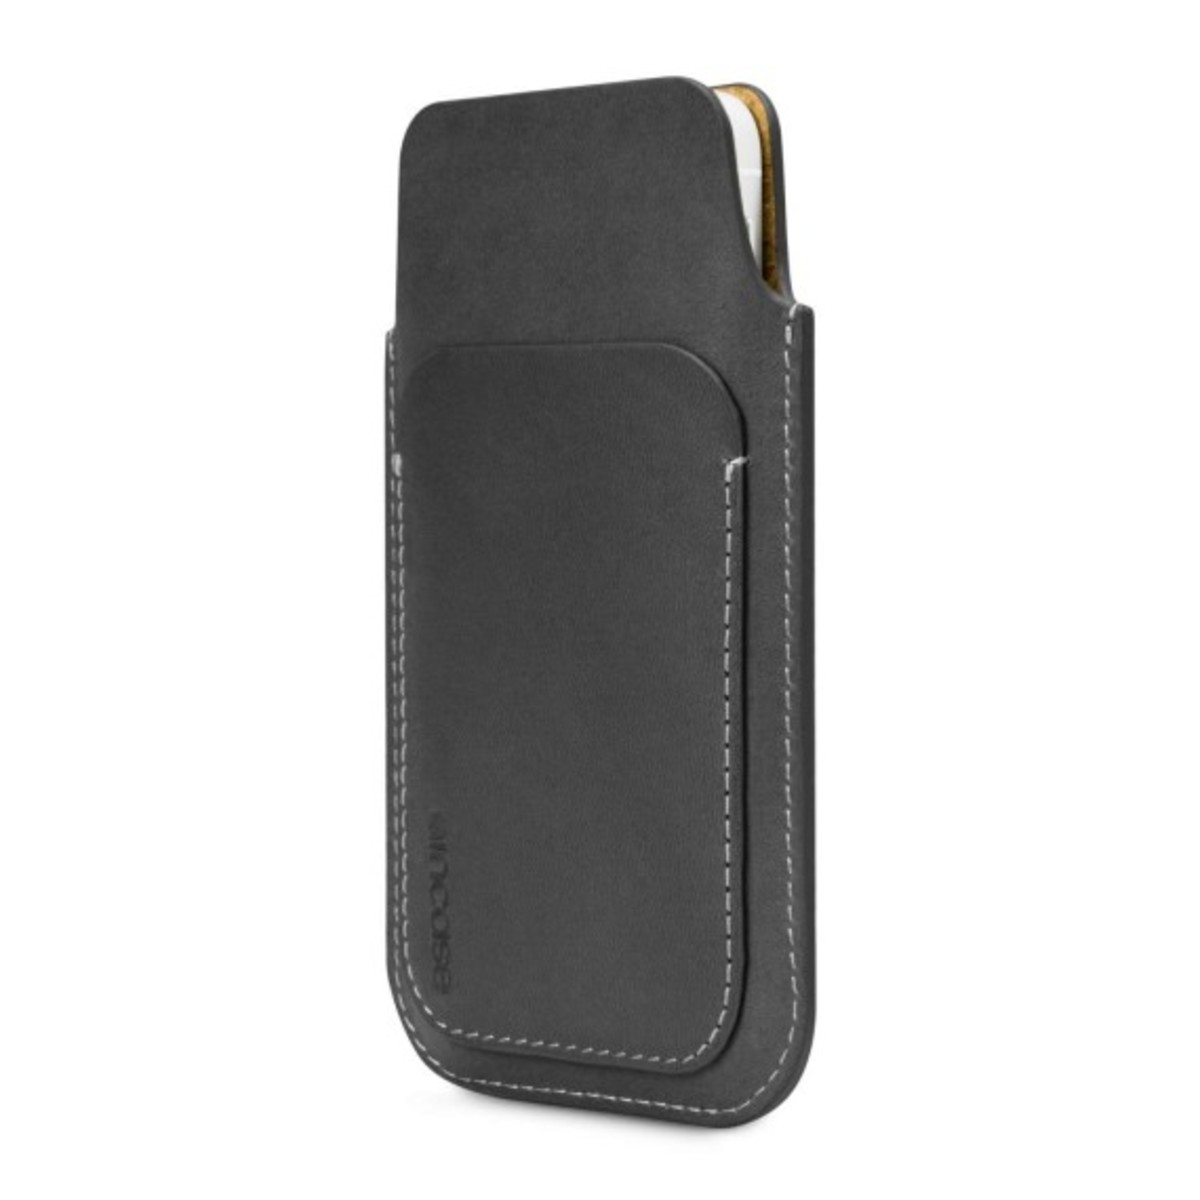 incase-iphone-5-leather-pouch-07